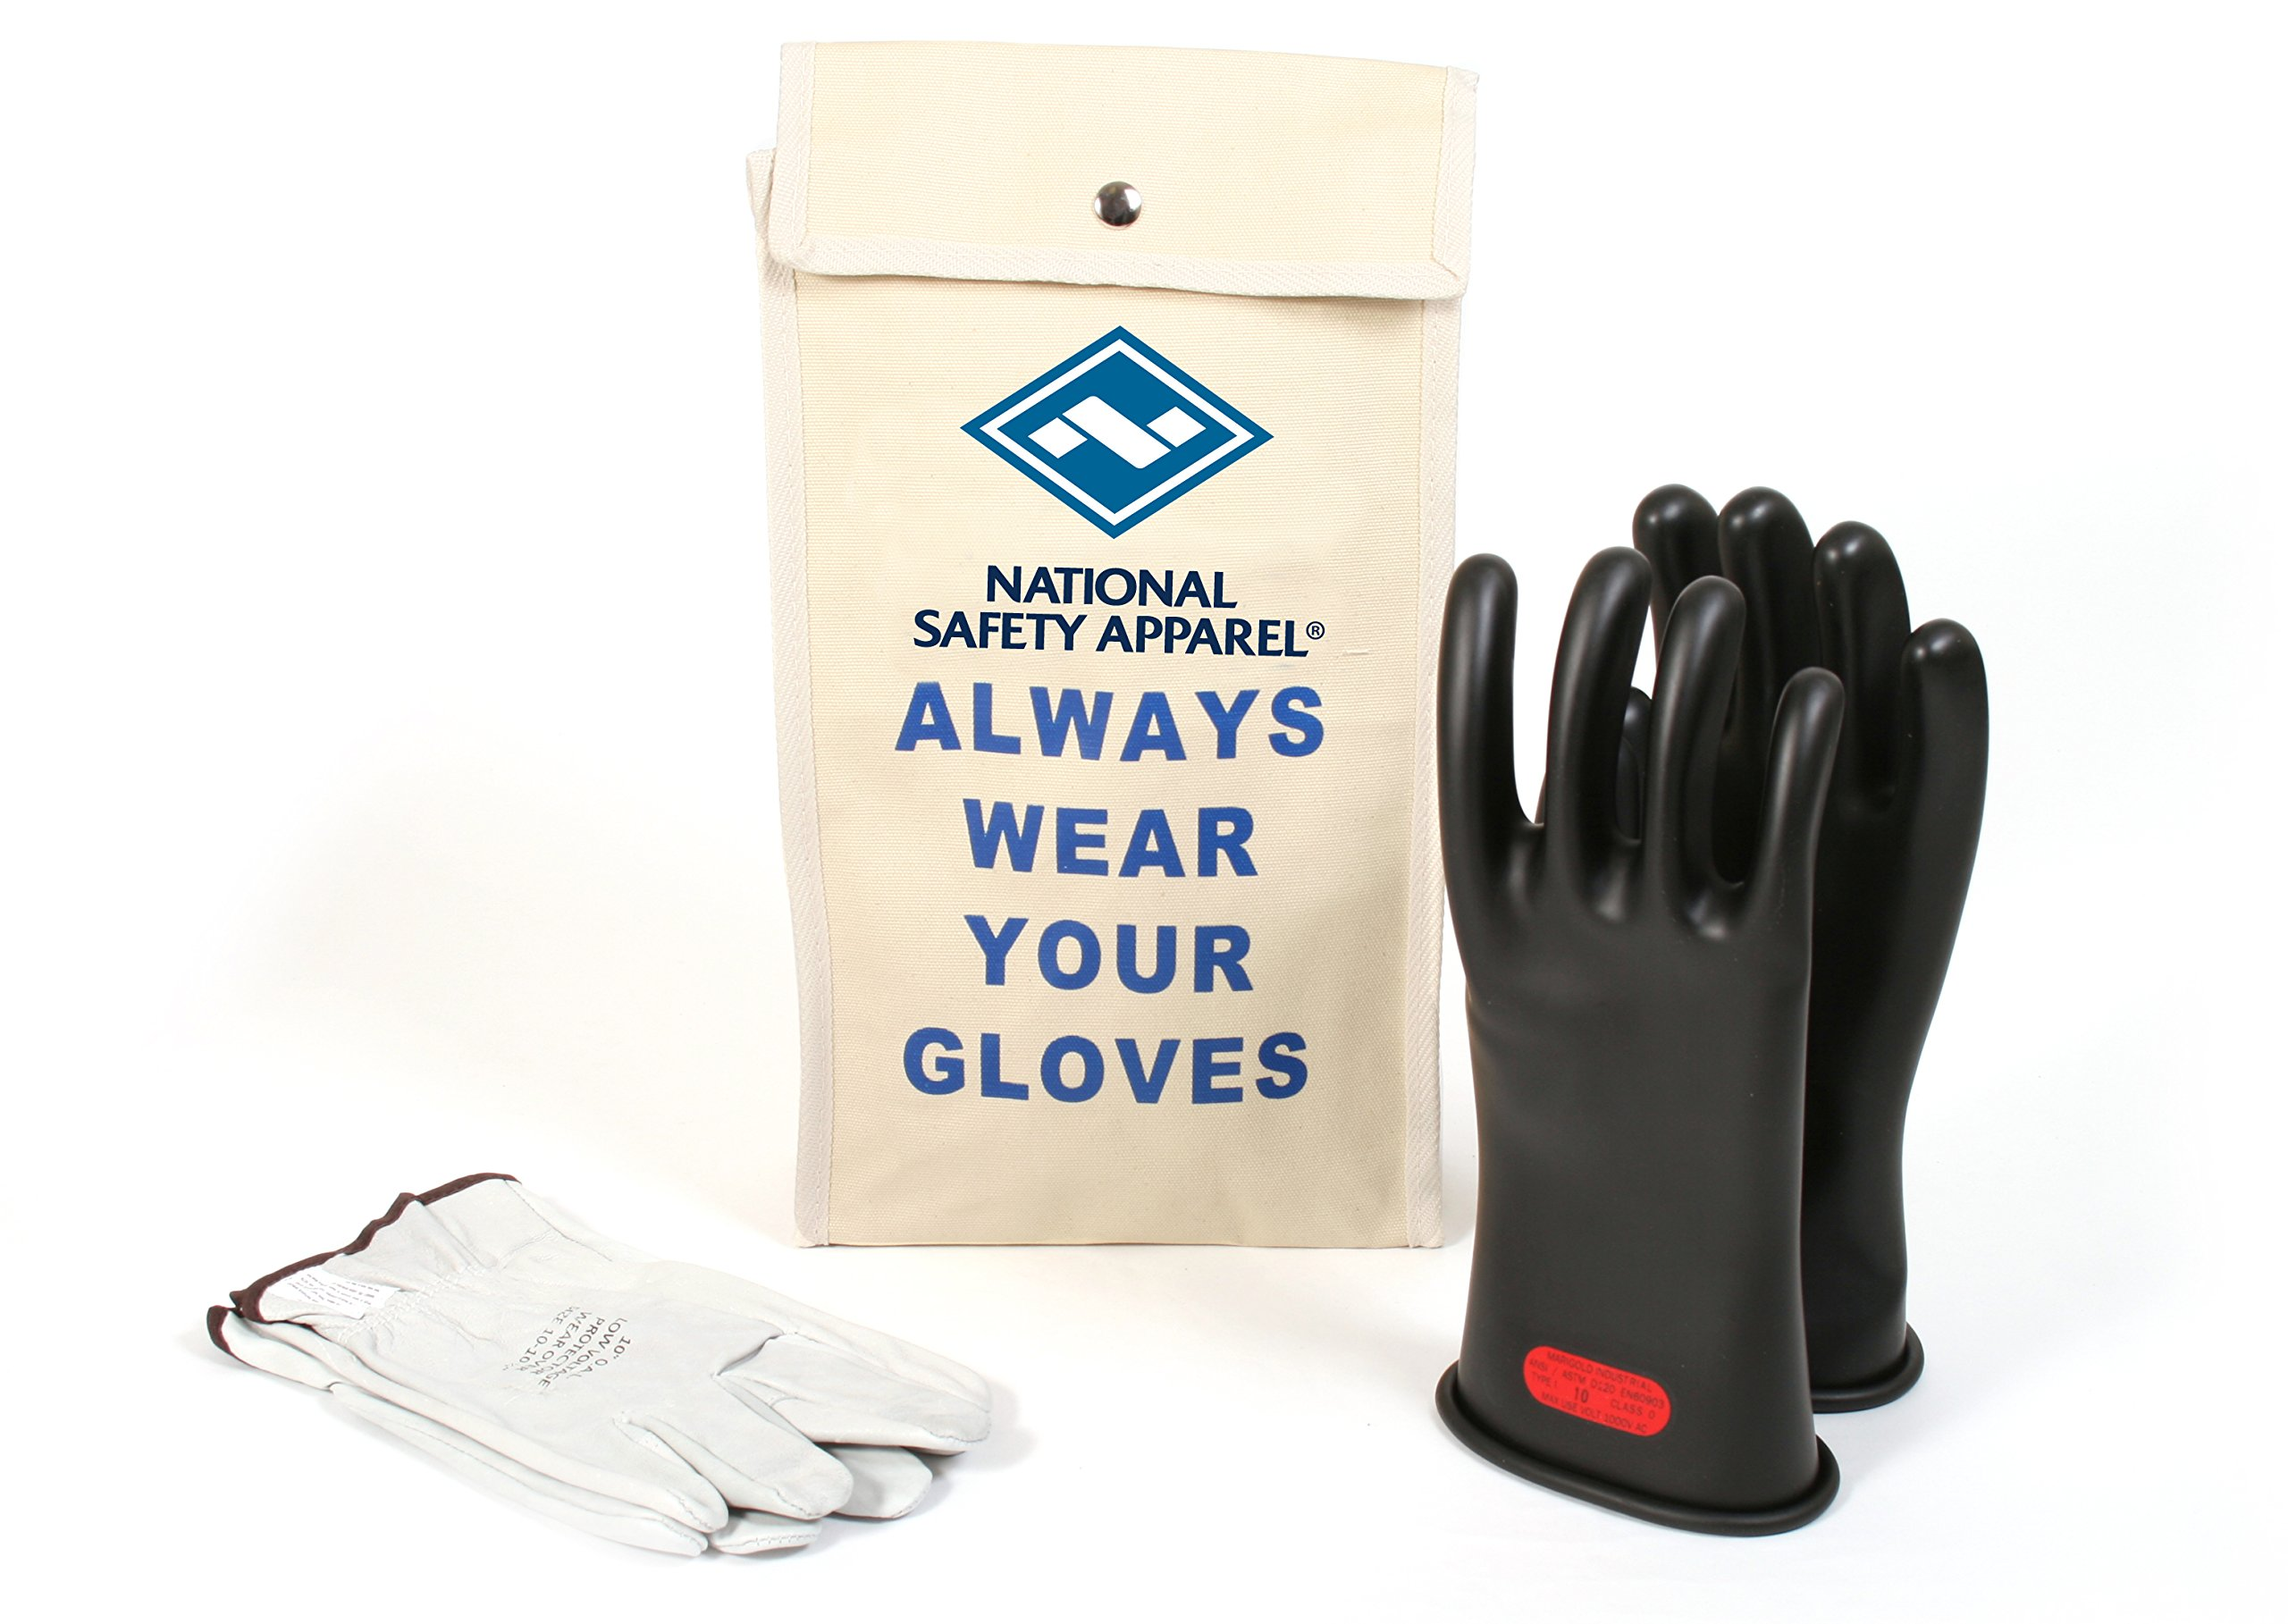 National Safety Apparel Class 0 Black Rubber Voltage Insulating Glove Kit with Leather Protectors, Max. Use Voltage 1,000V AC/ 1,500V DC (KITGC010)